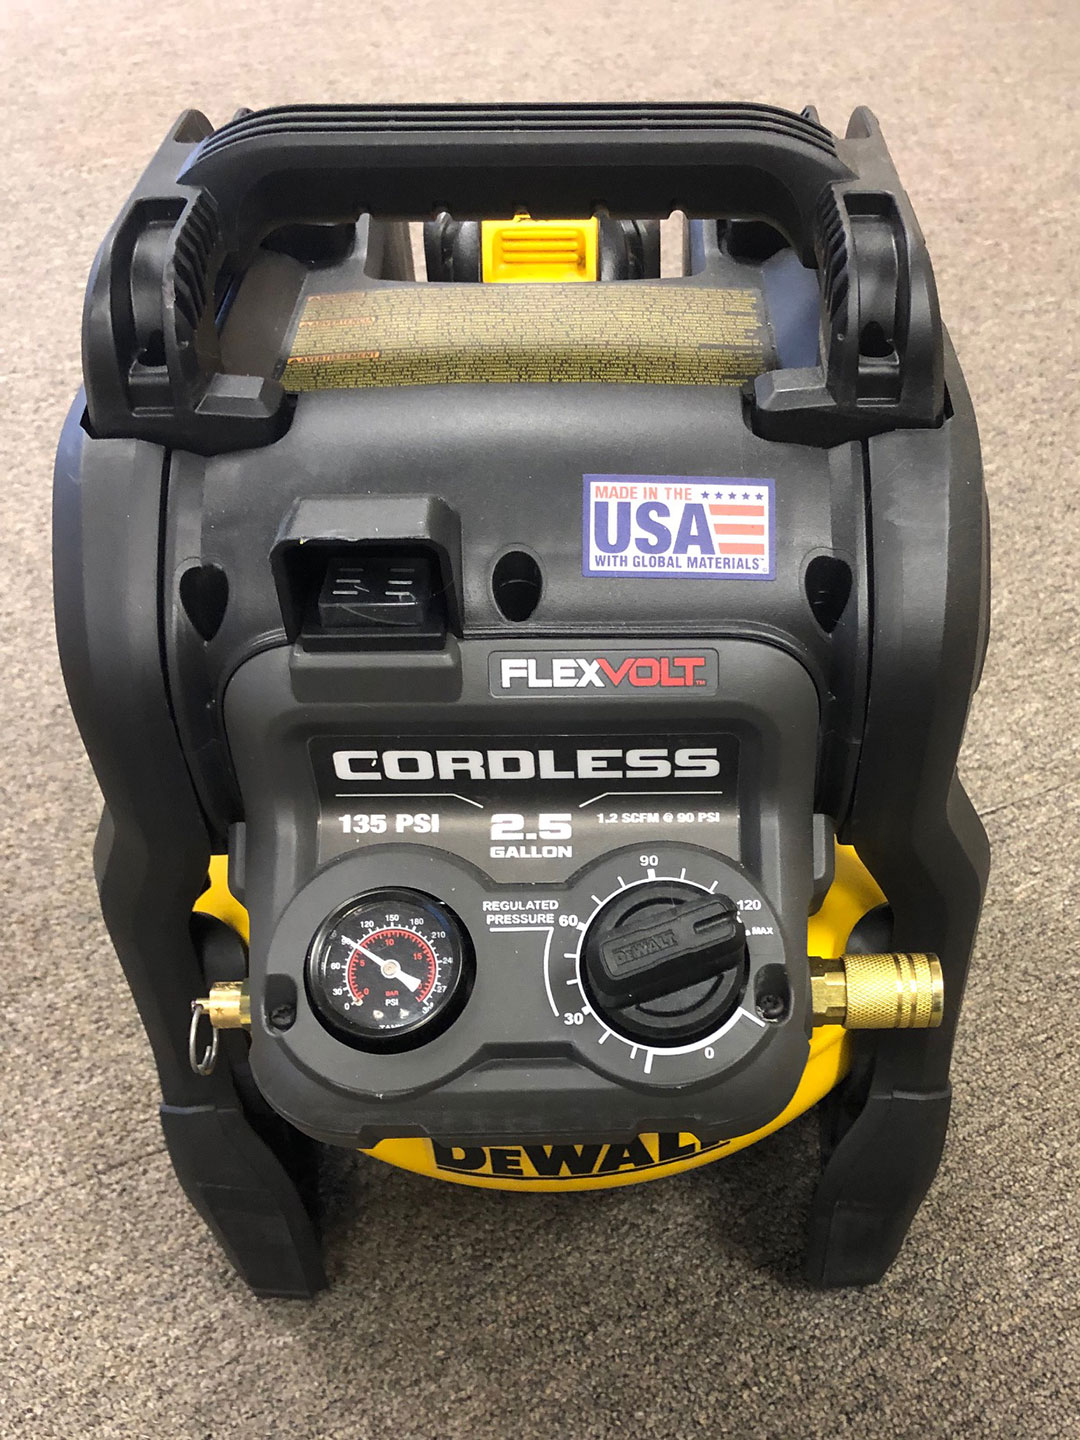 Dewalt Battery Powered Air Compressor Superiorland Rental